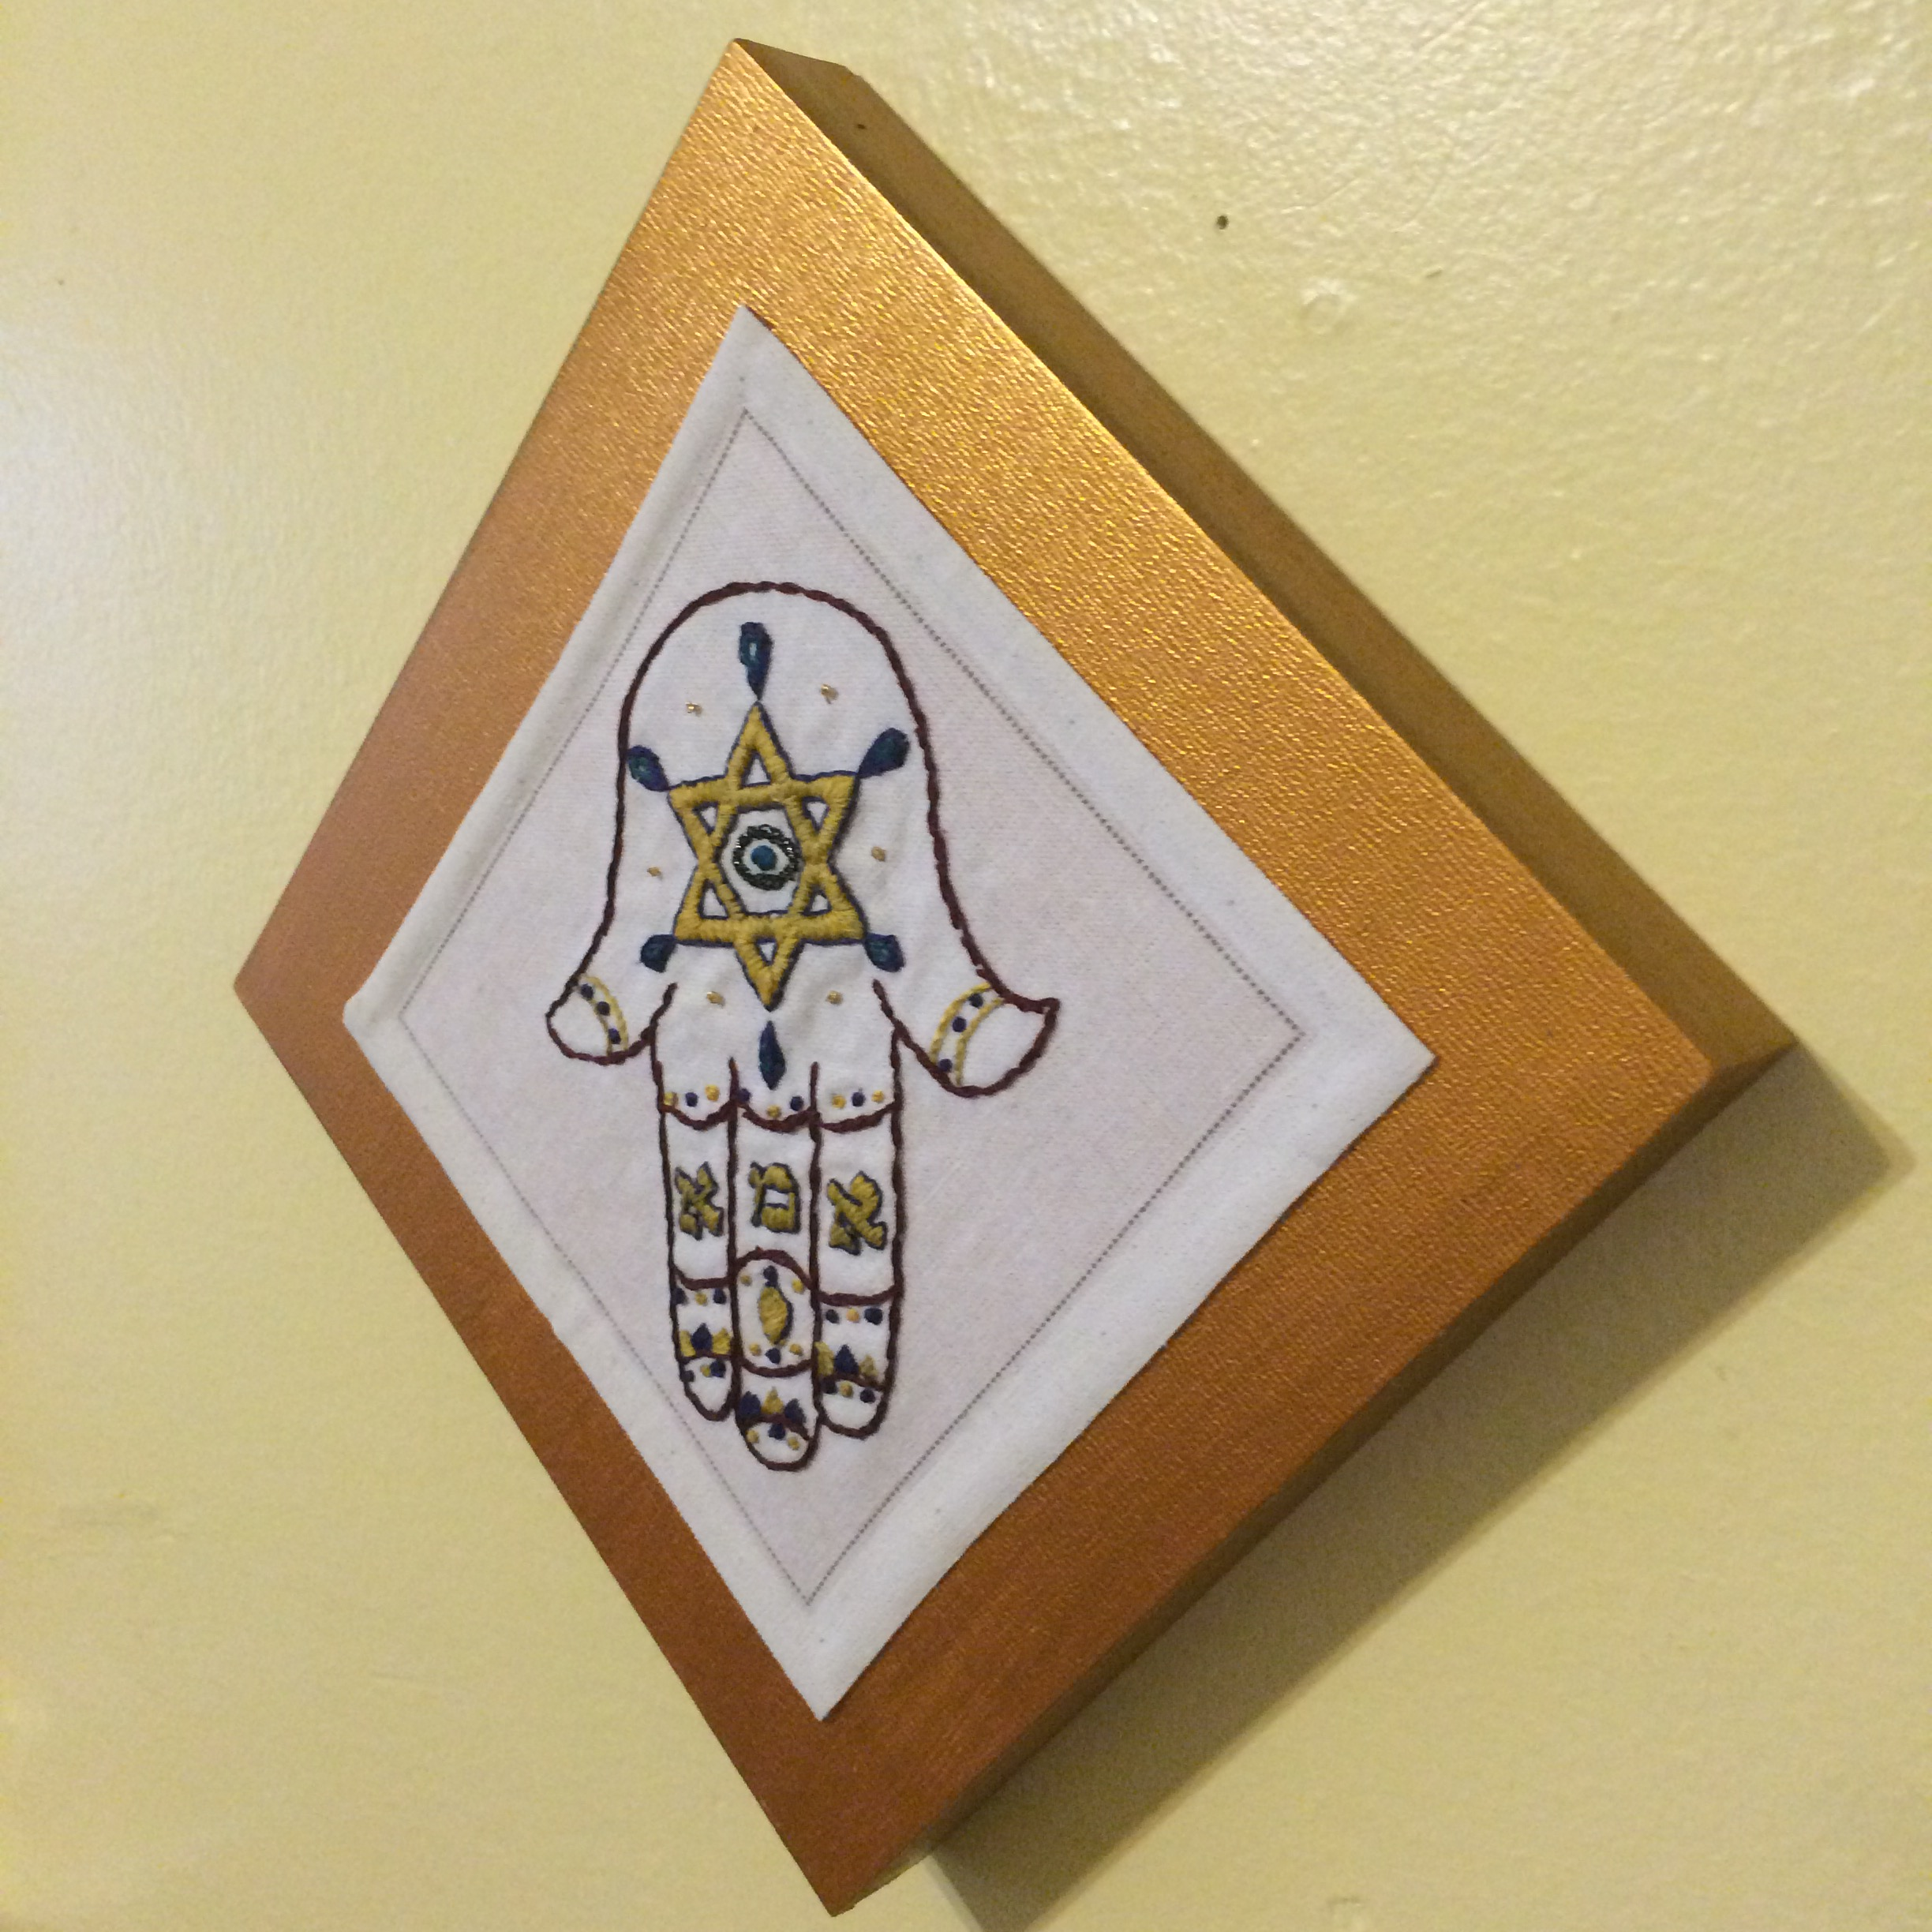 Hand embroidered hamsa amulet mounted on wood tile.